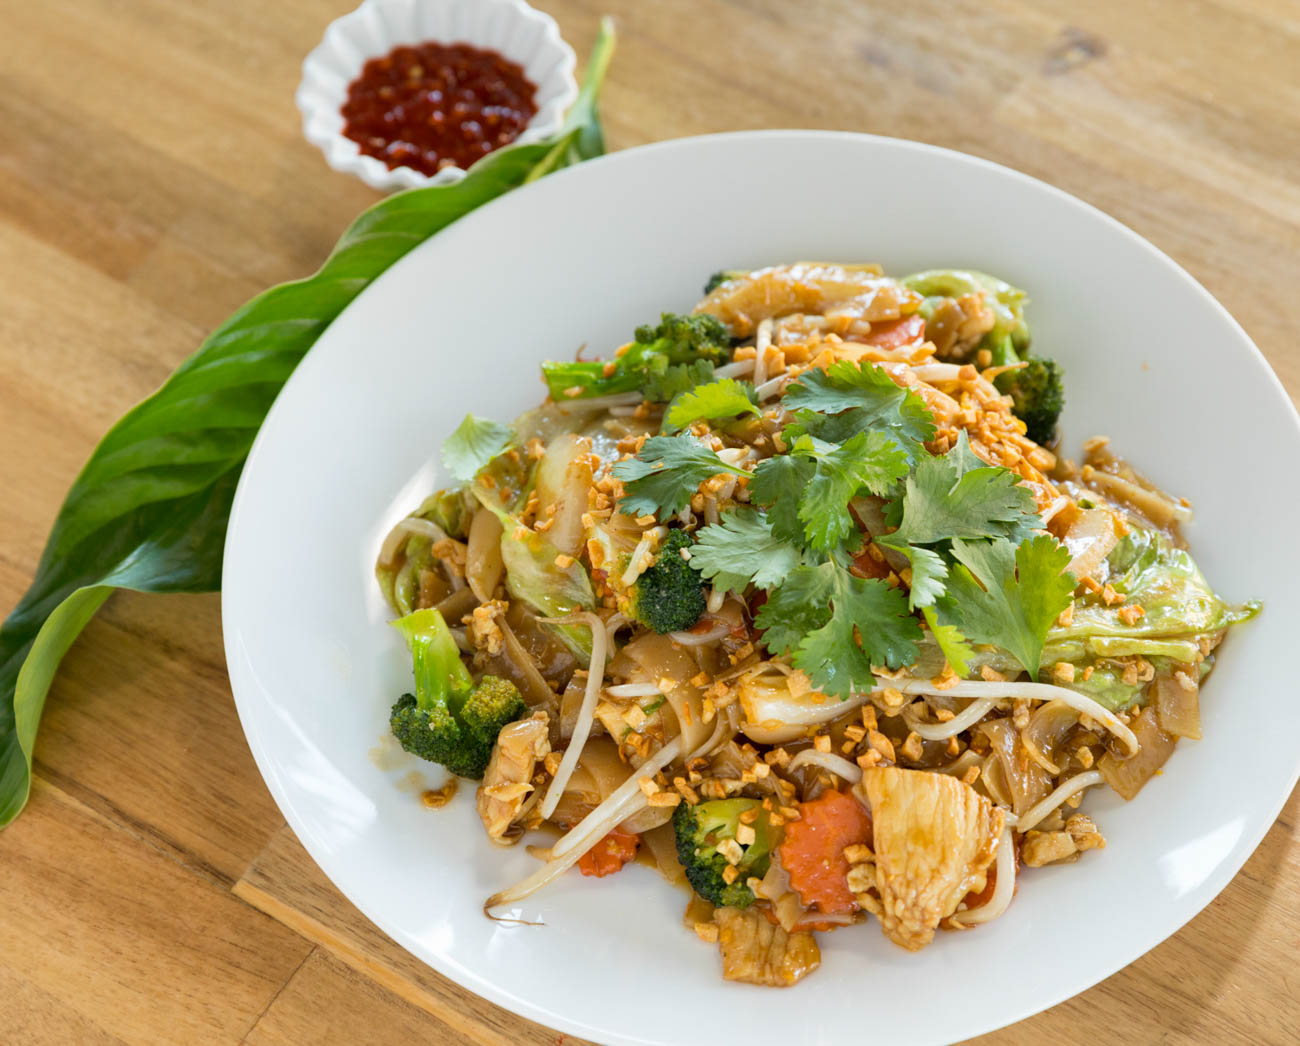 Kua Gai noodle: wide rice noodle in house dark sauce & light sesame oil with chicken, egg, white onion, broccoli, carrot, lettuce, bean sprouts, and topped with cilantro and fried garlic{ }/ Image: Marlene Rounds // Published: 1.17.19